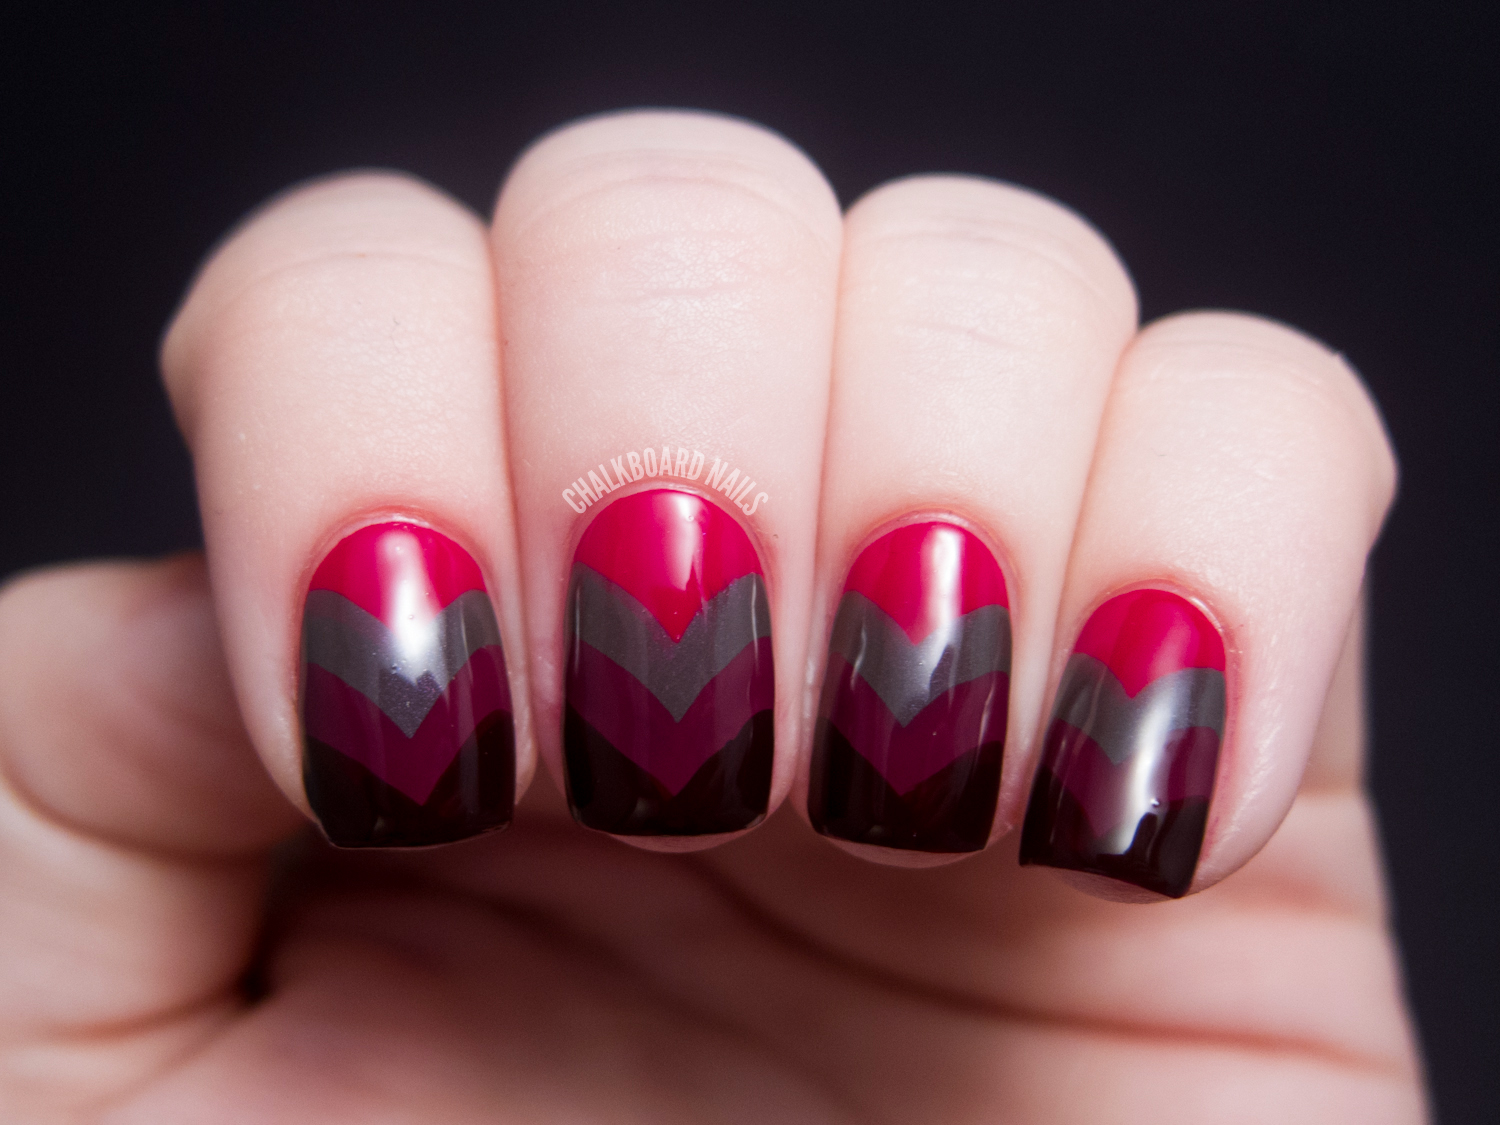 Vampy Fishtail - China Glaze On Safari Nail Art | Chalkboard Nails ...